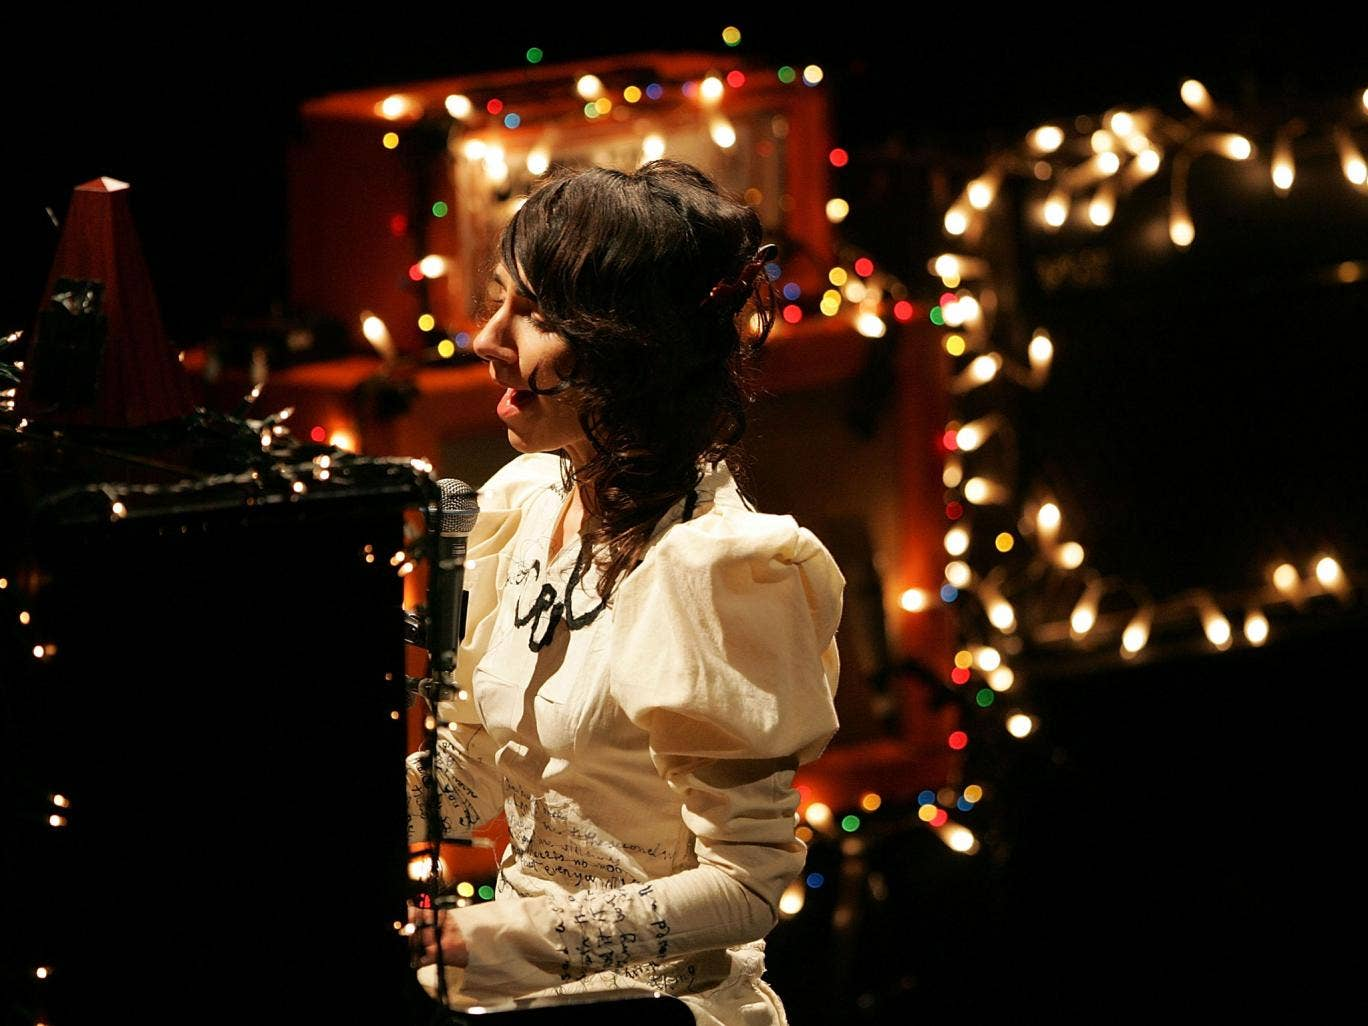 The true face of England and Englishness? PJ Harvey performs in Auckland, New Zealand earlier this year.